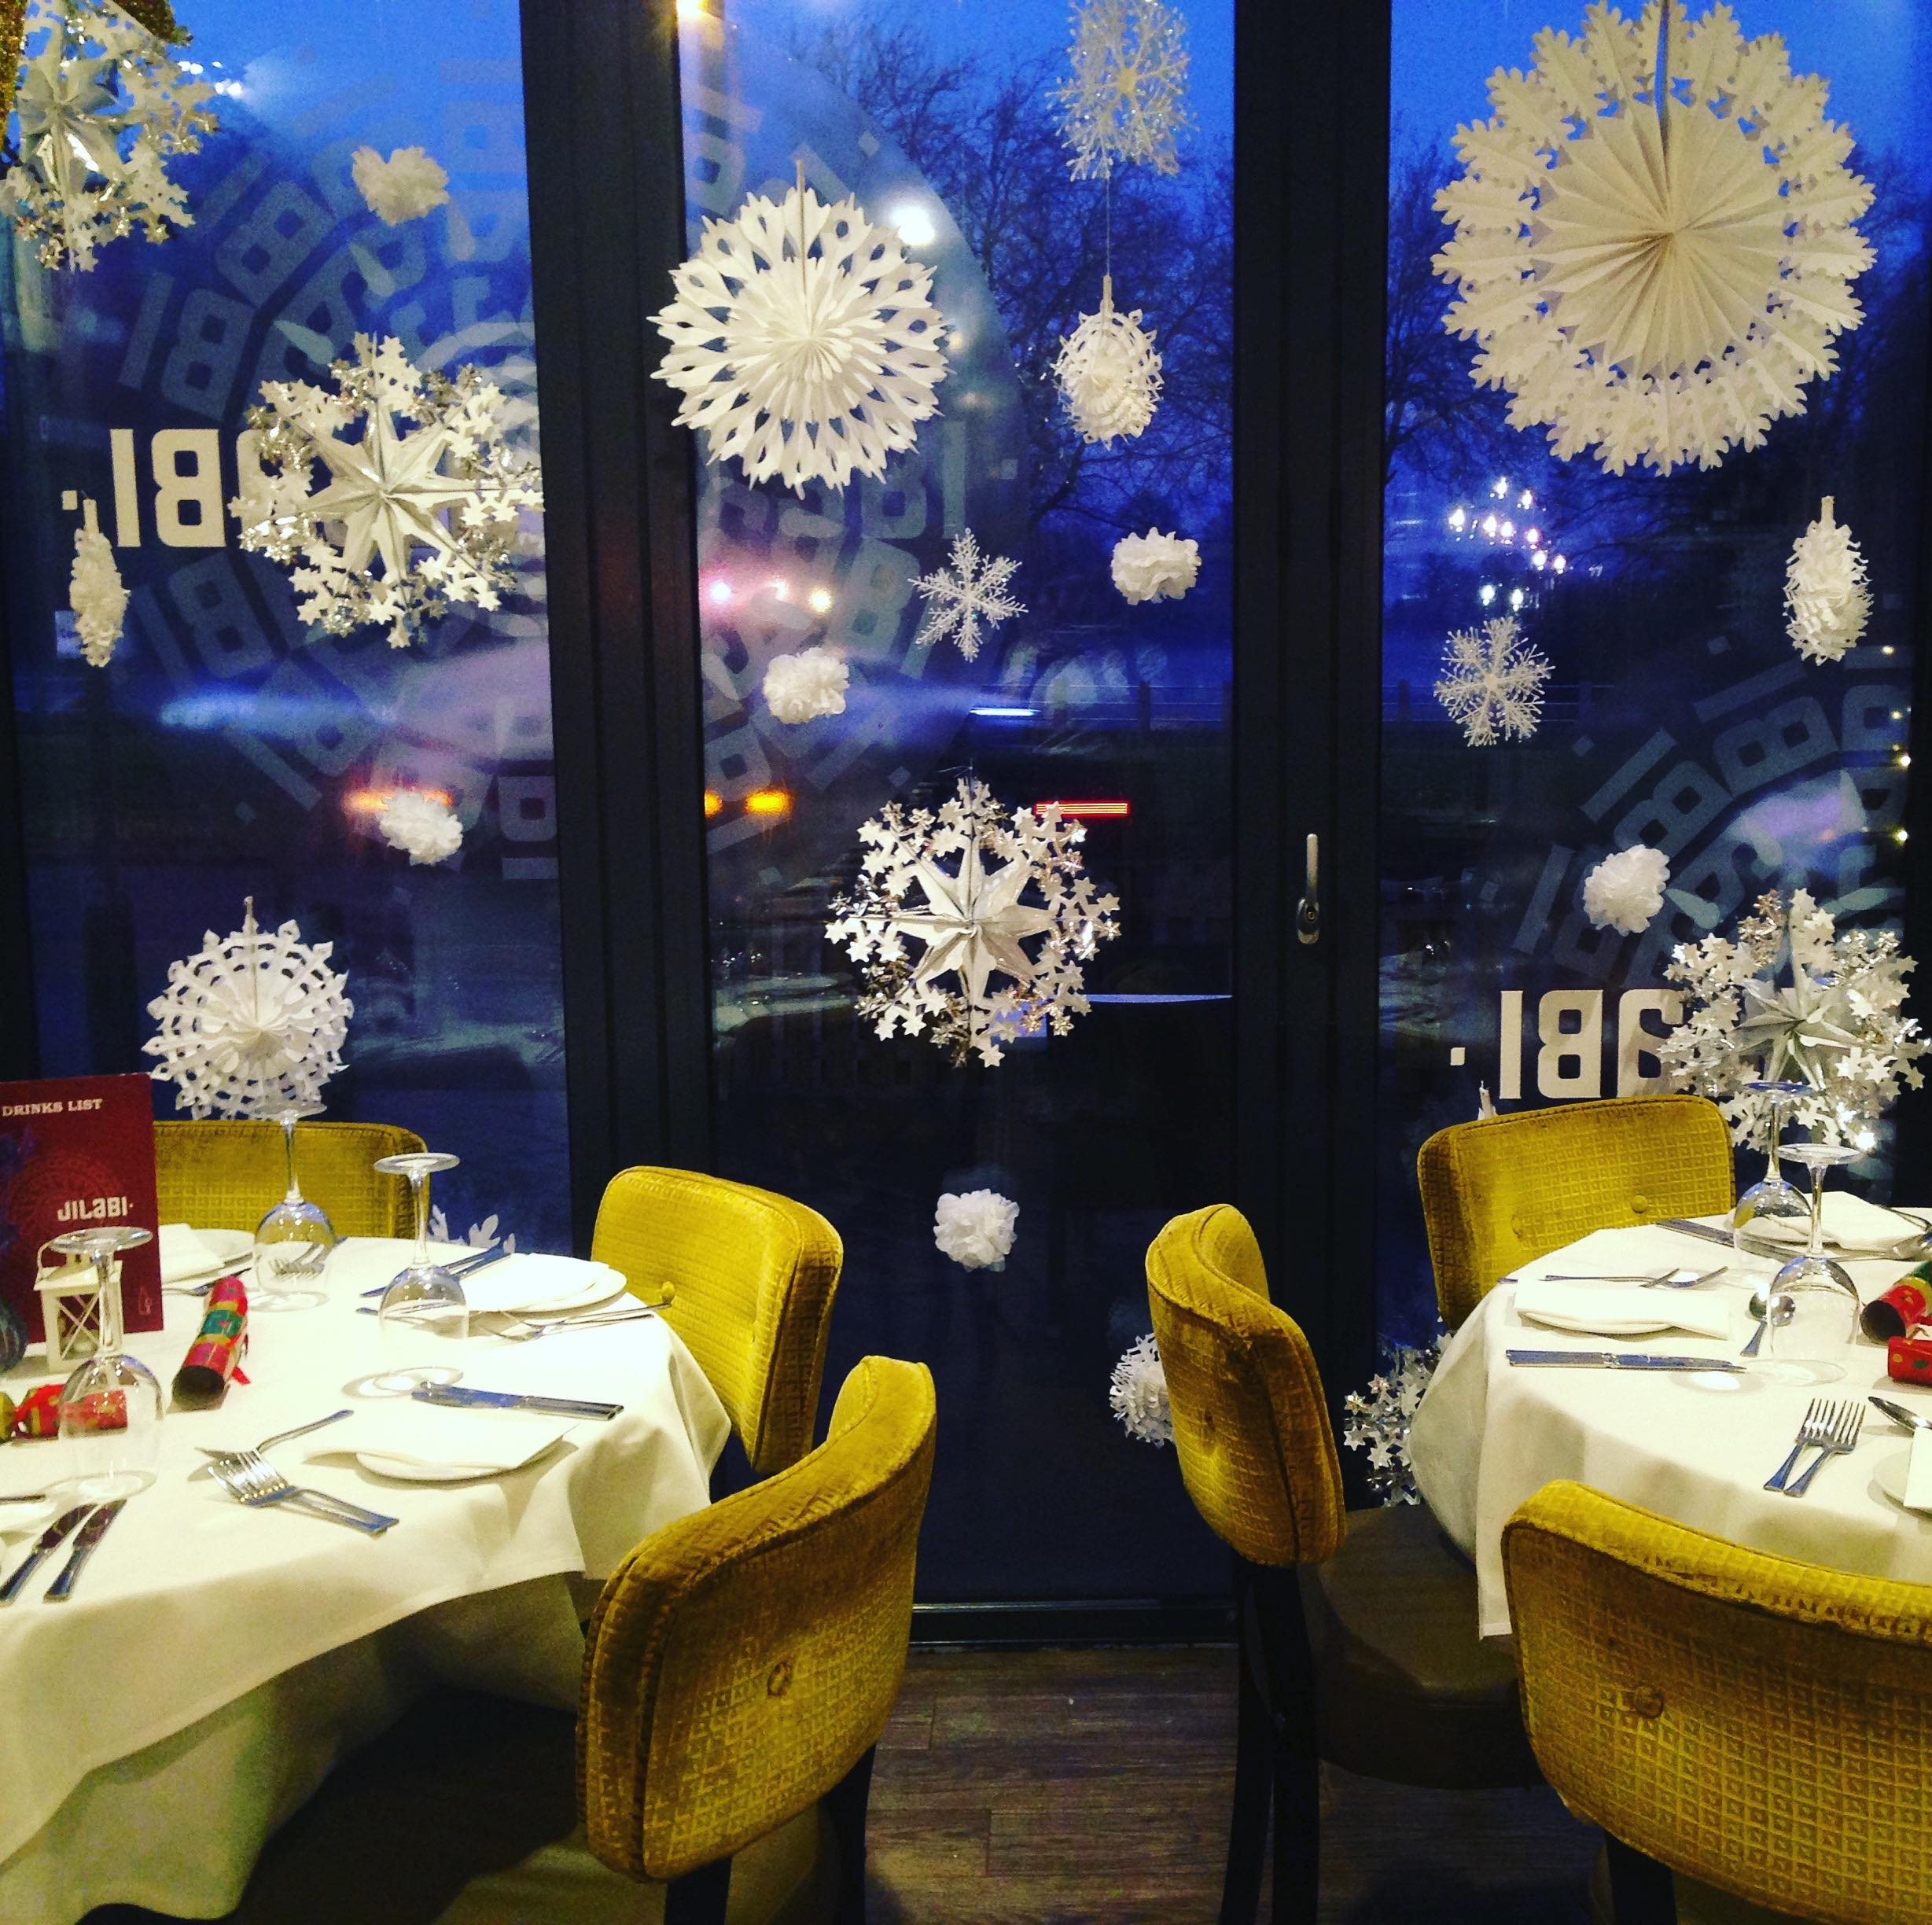 Jilabi Indian Restaurant Christmas